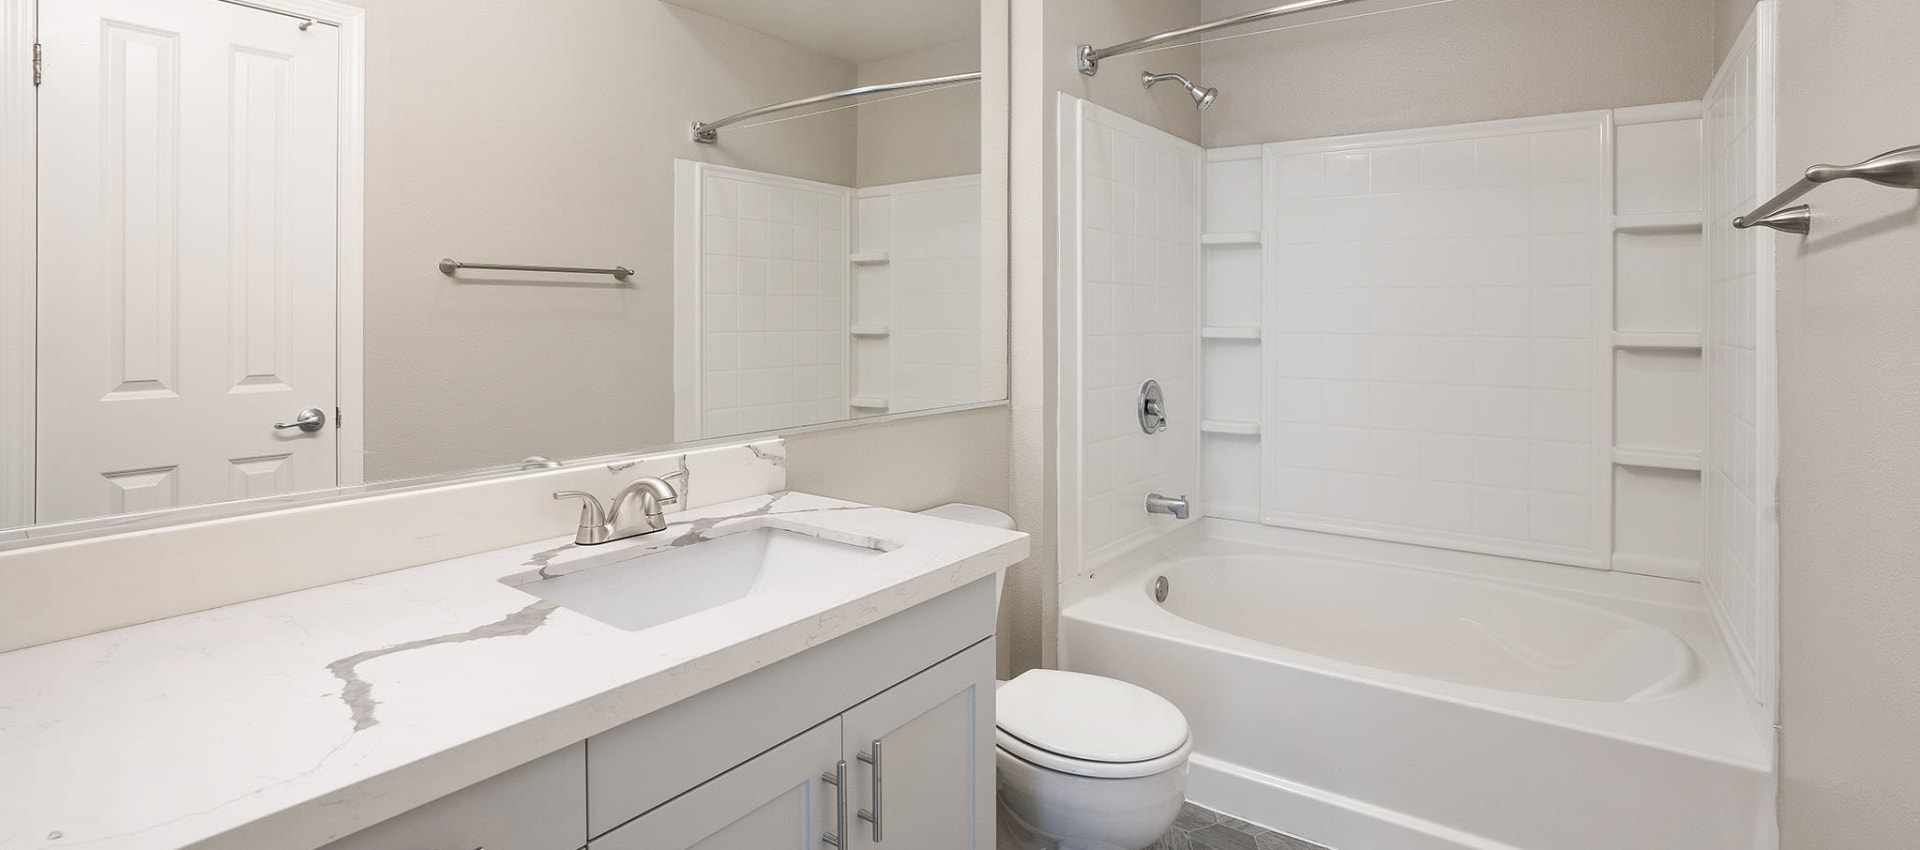 Bathroom with large tub at Park Central in Concord, California